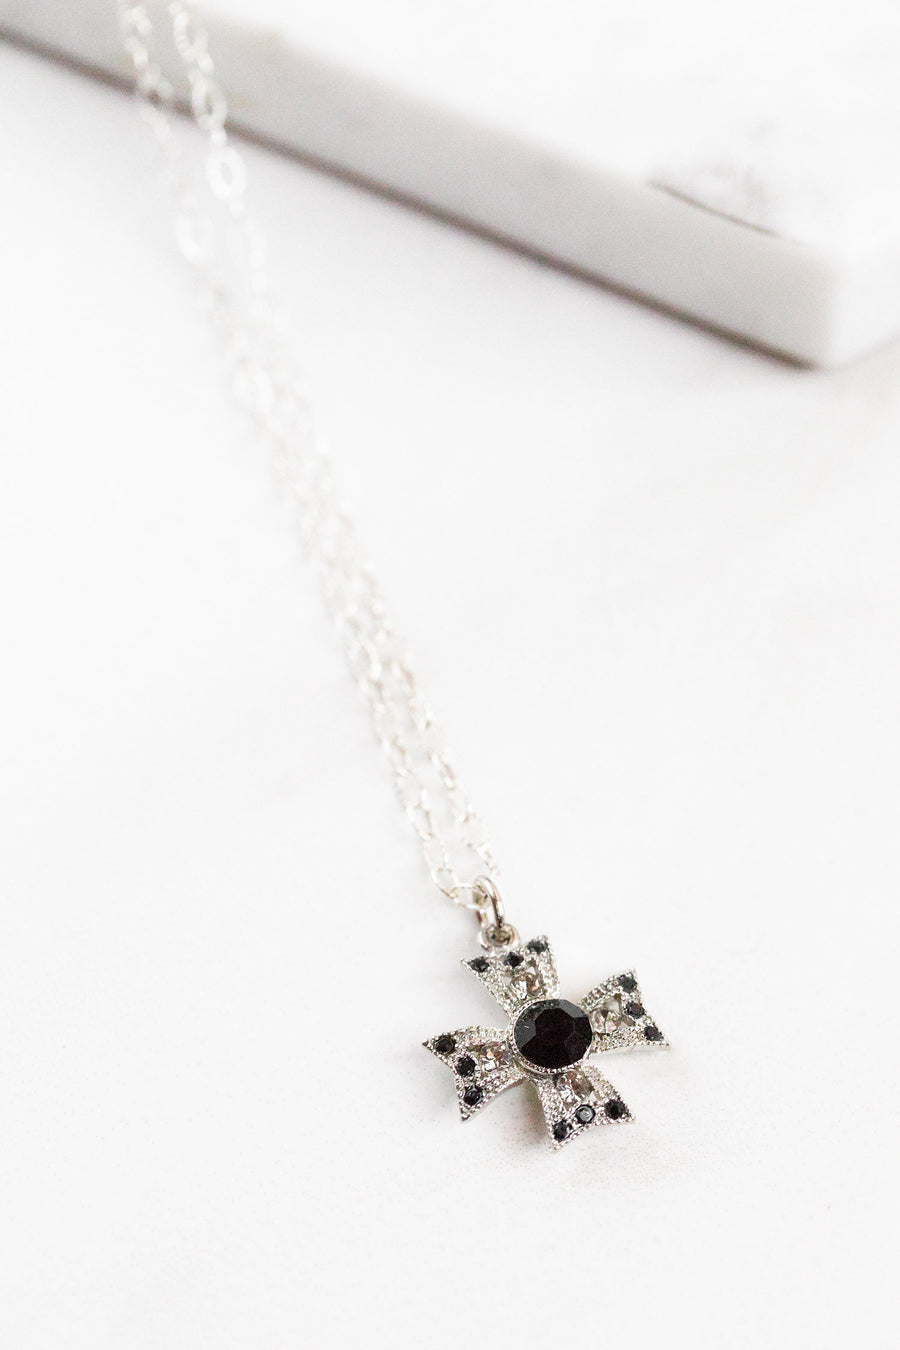 Find the perfect necklace you're looking for from Charme Silkiner! This beautiful Sterling Silver Chain Necklace with Black Swarovski Cross is perfection. Great for layering or wearing alone the Grea Necklace is the perfect piece of unique jewelry that everyone should own.